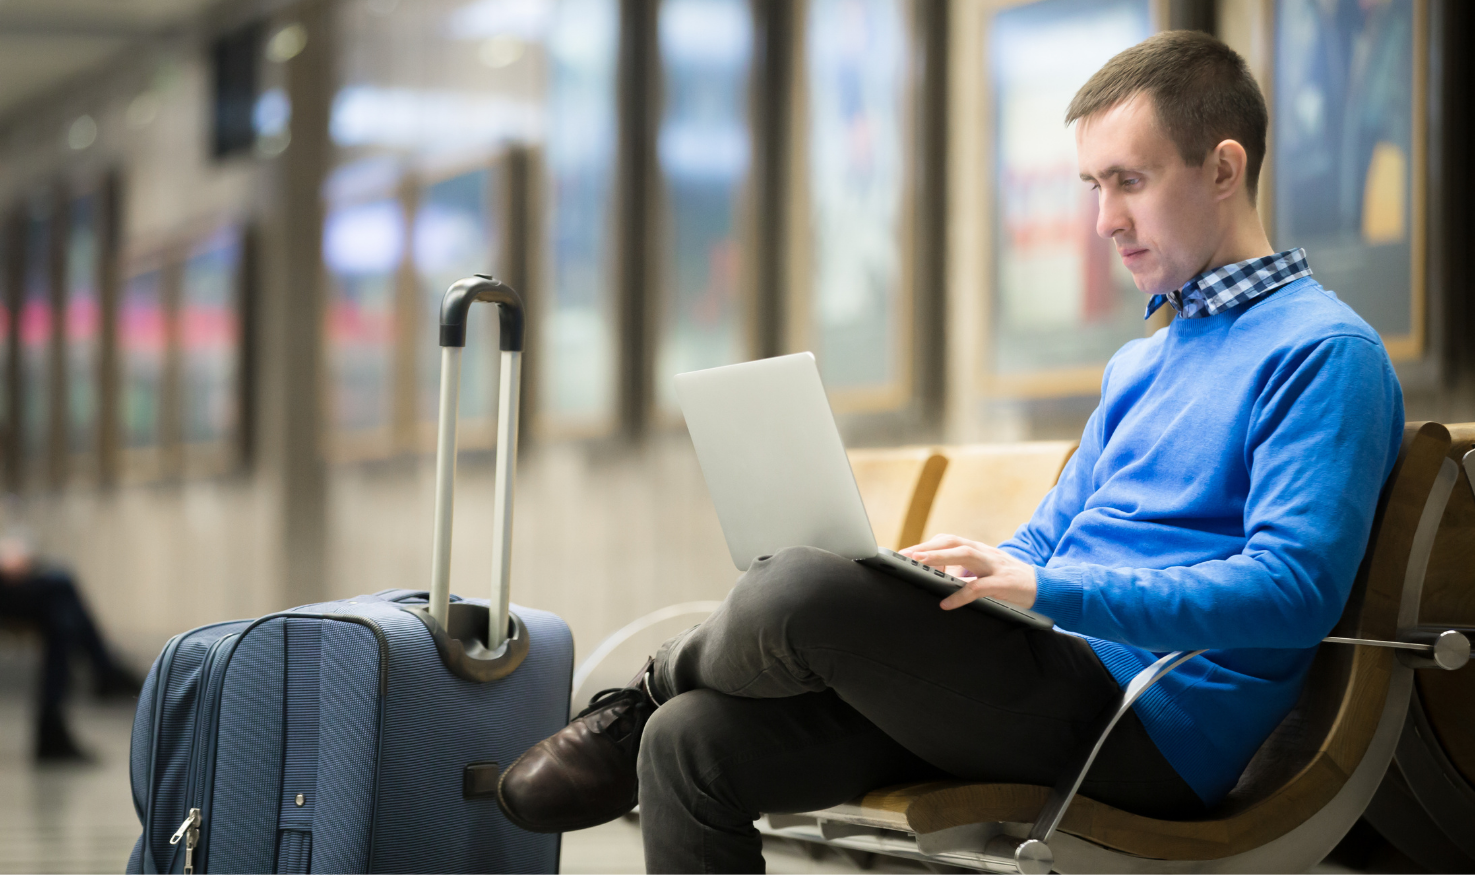 An employee working remotely from a railway station